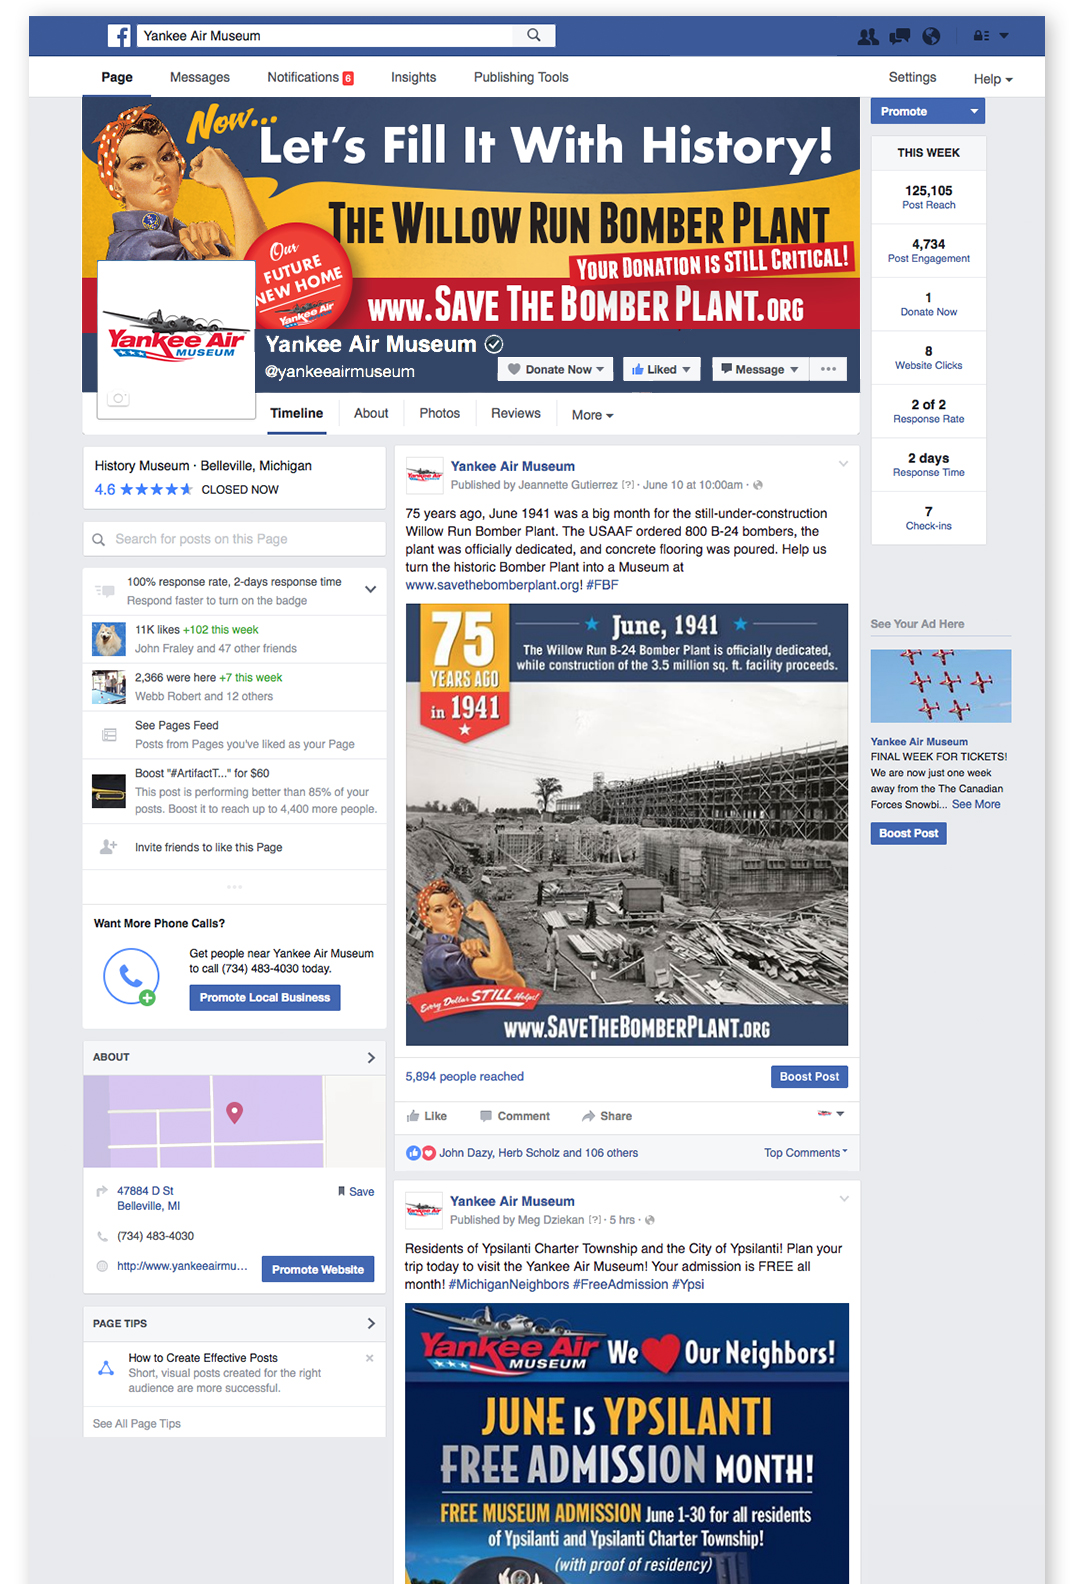 Save The Bomber Plant Facebook